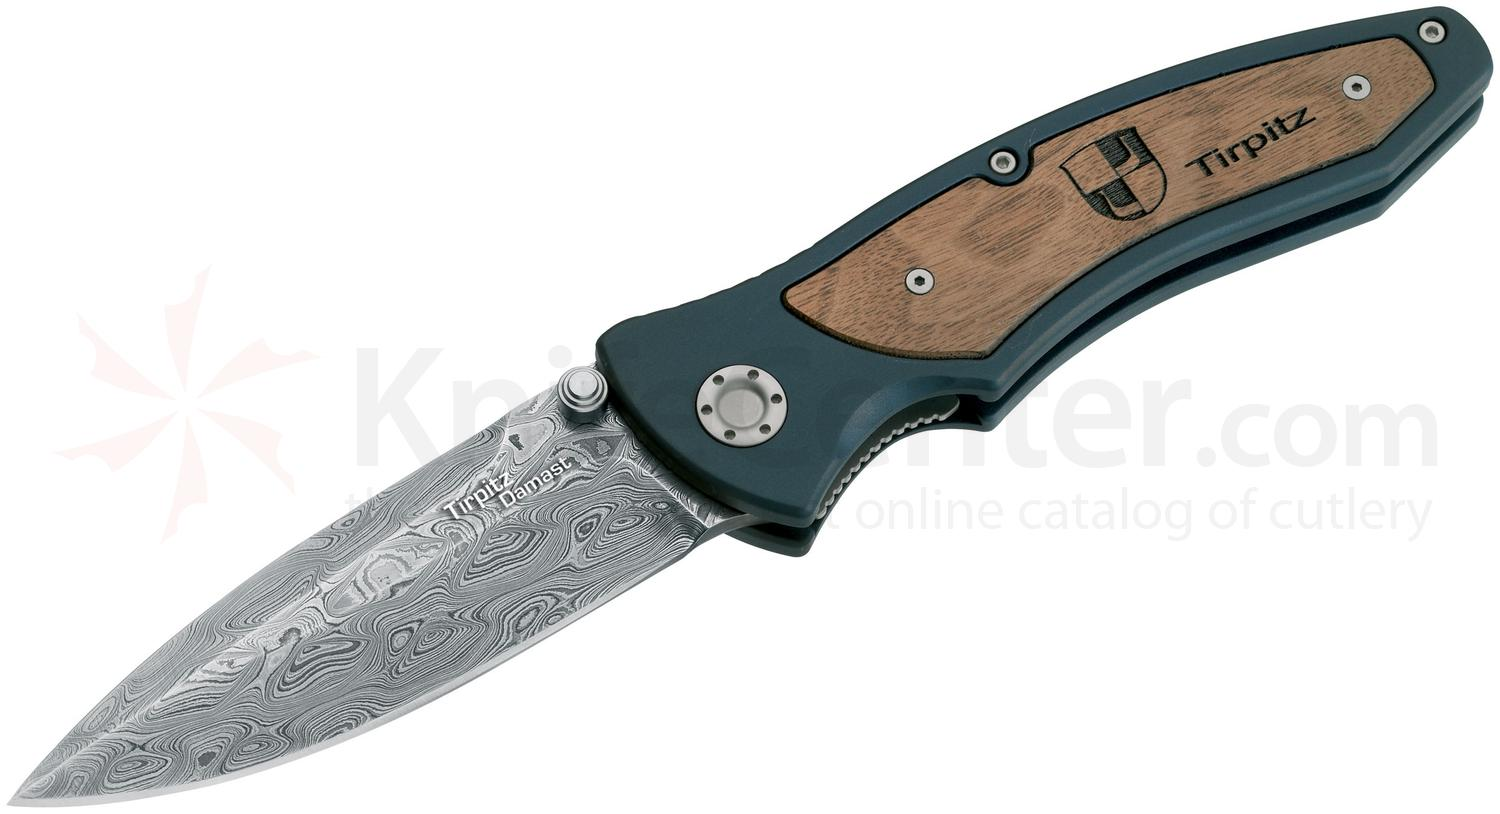 Boker Tirpitz Folding Knife 3-7/8 inch Damascus Blade, Aluminum Handles with Walnut Inlay